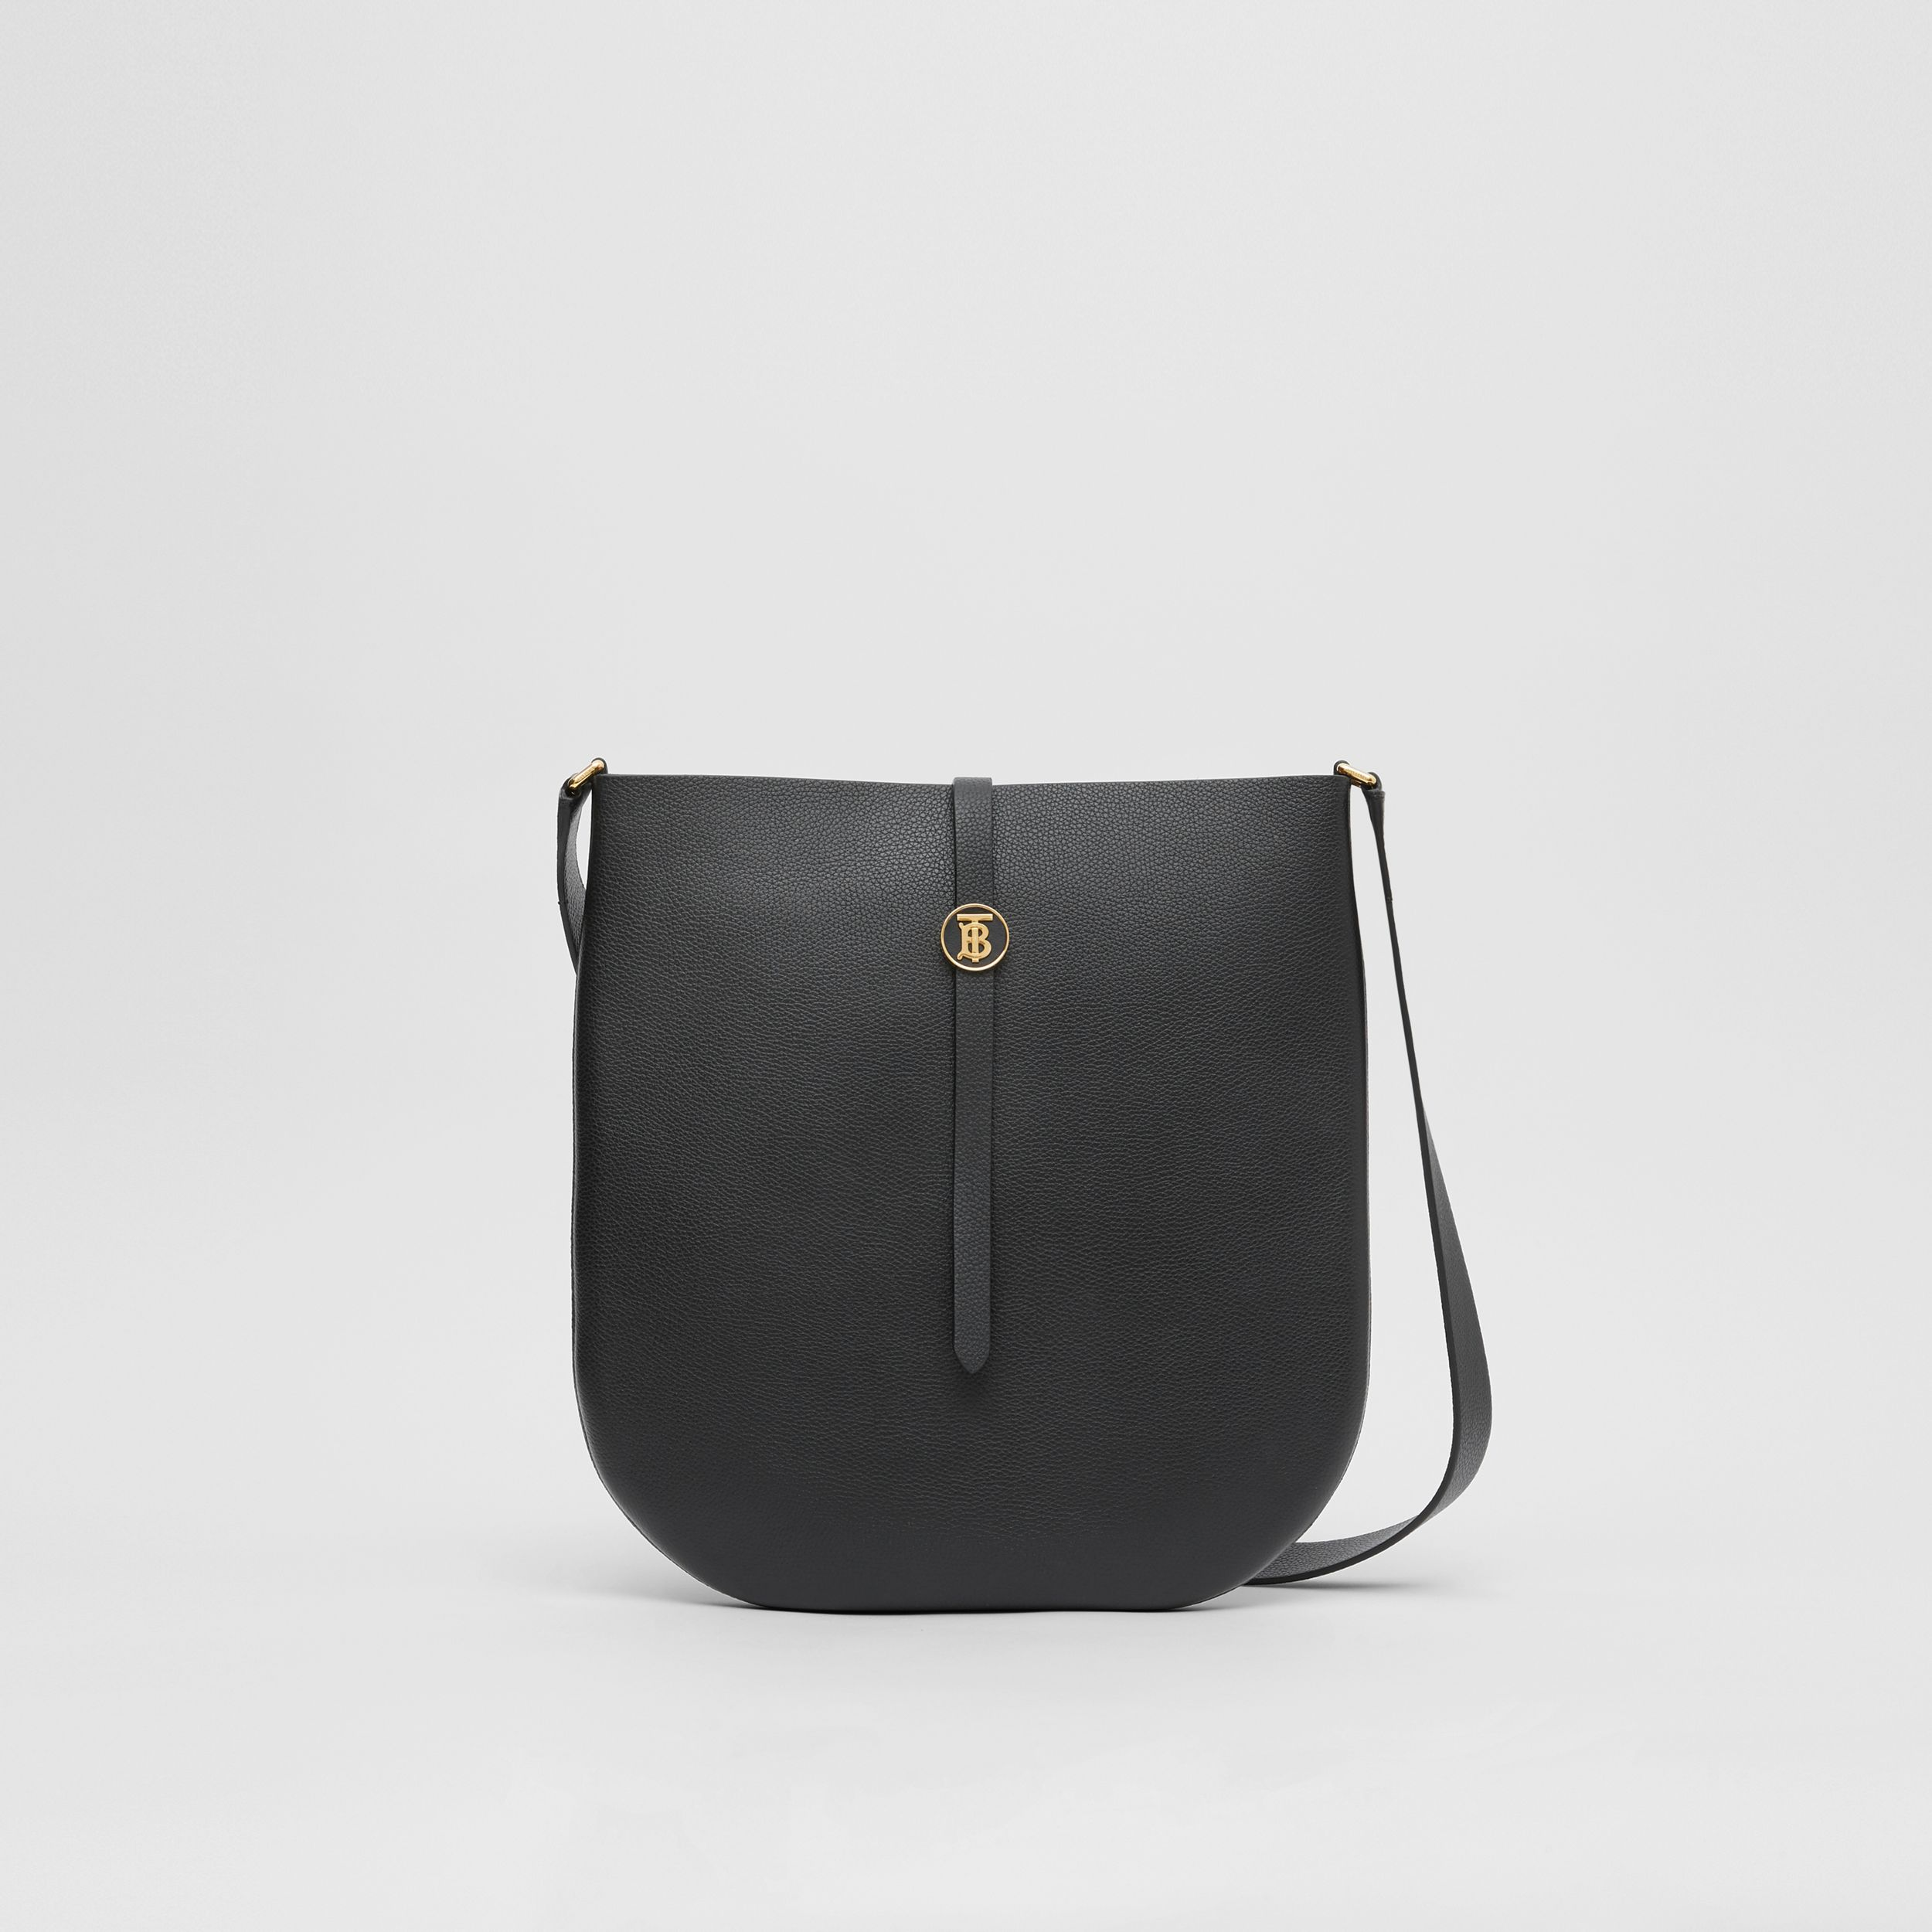 Grainy Leather Anne Bag in Black - Women | Burberry - 1